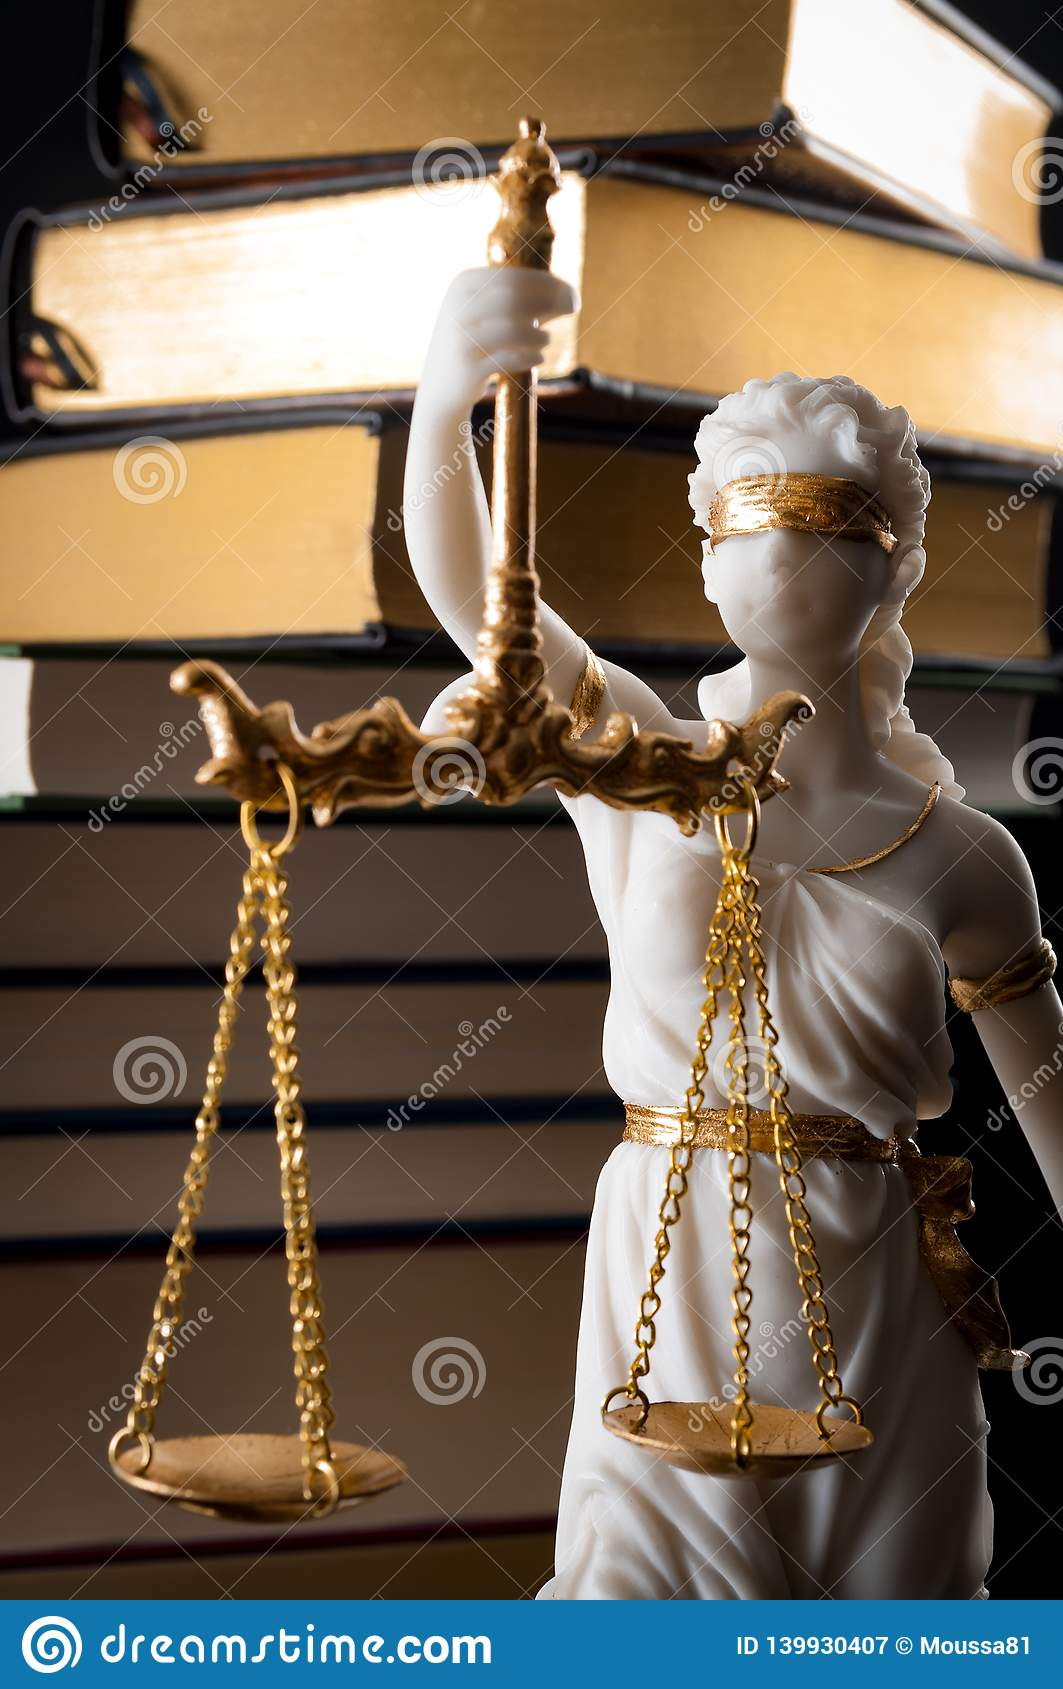 Legal code, enforcement of the law and blind Iustitia concept with statue of the blindfolded lady justice in Greek and